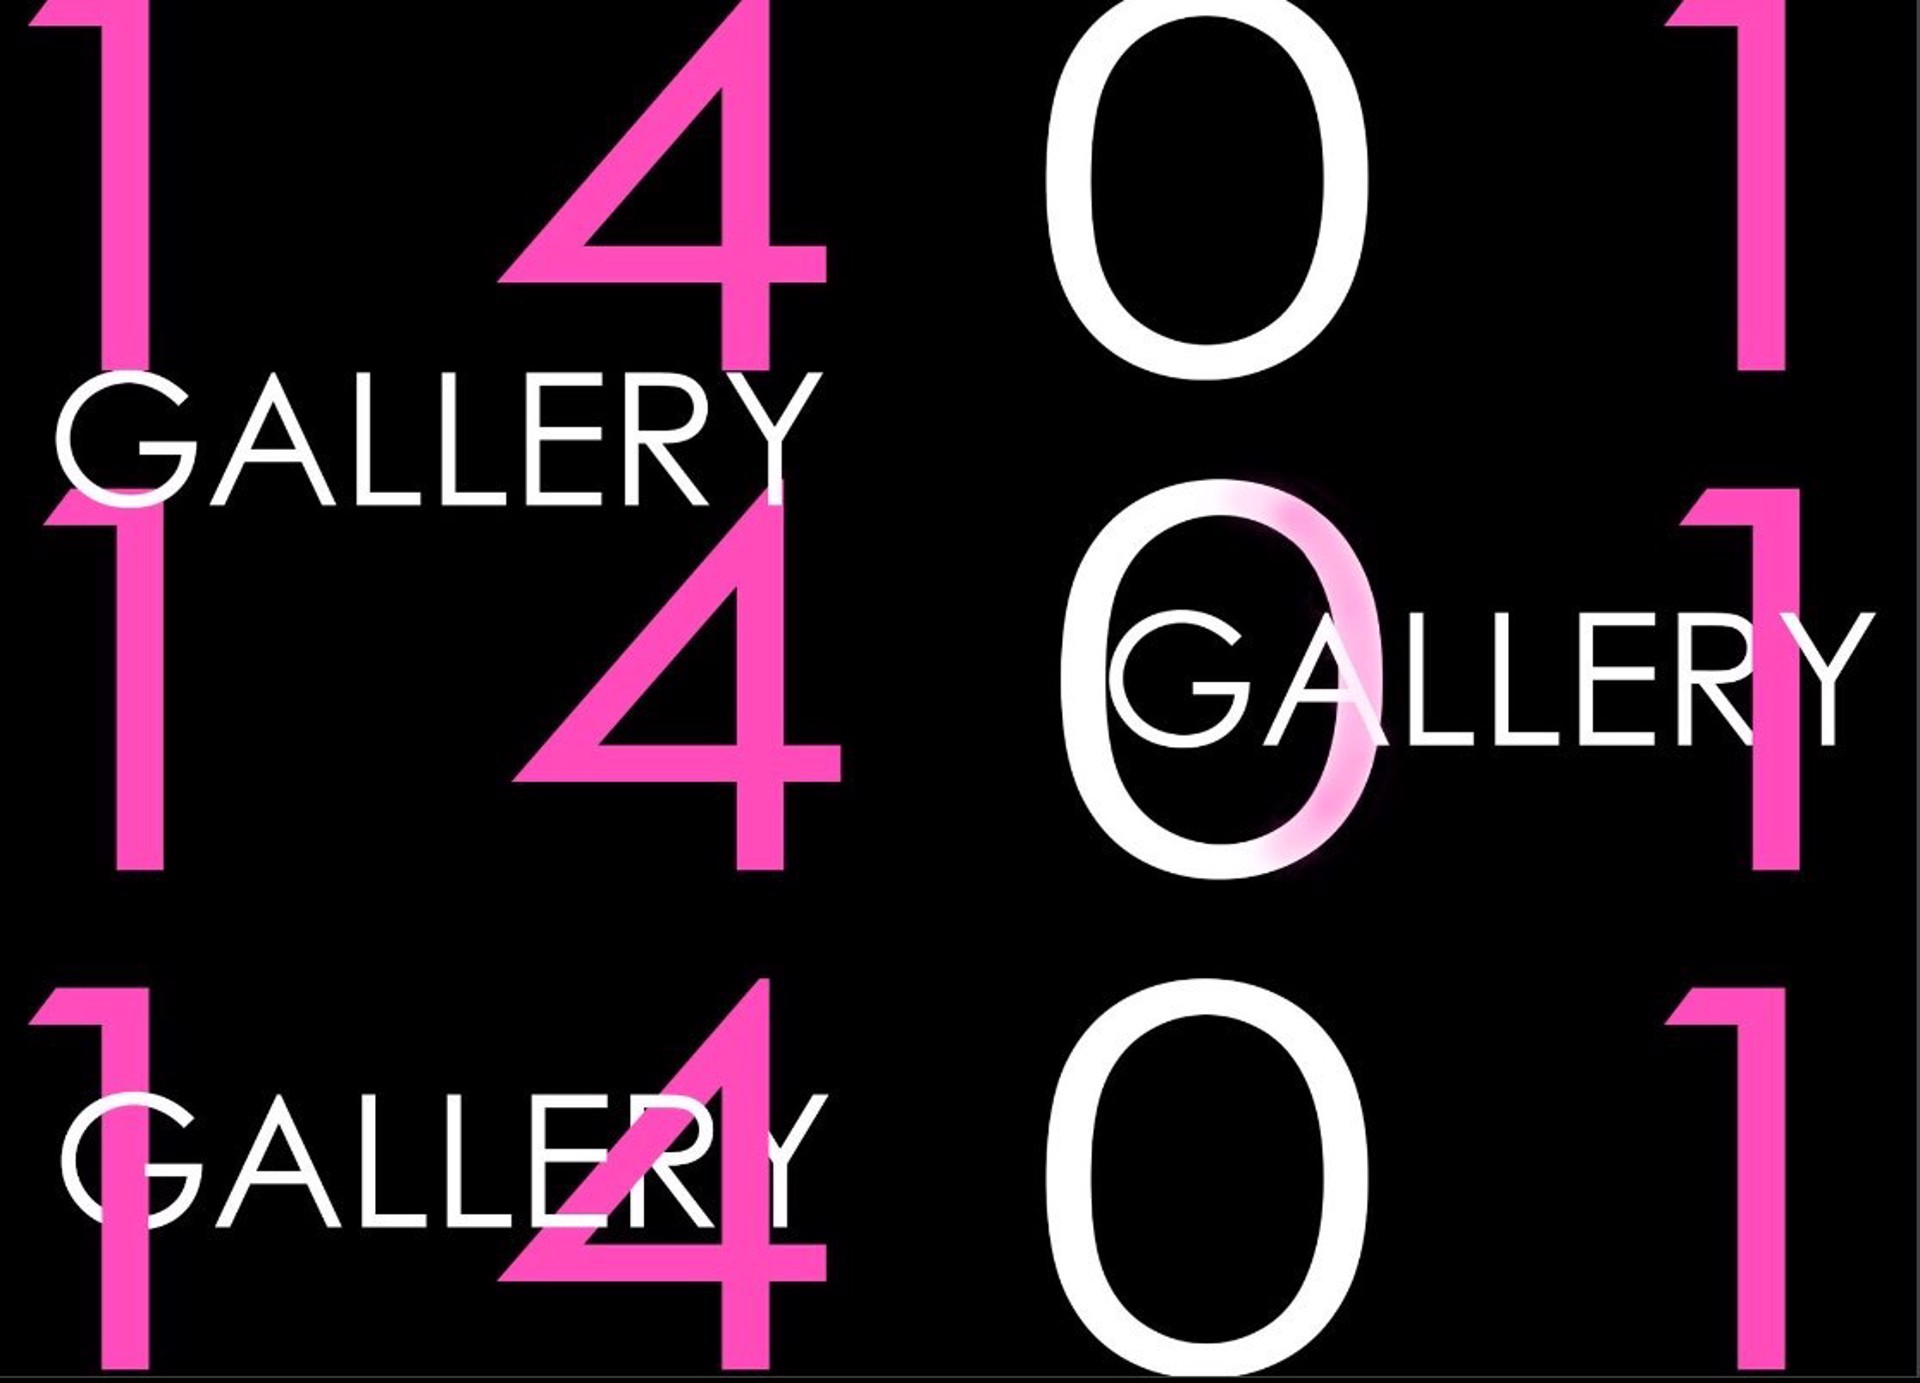 GALLERY 1401 $1000 GIFT CARD